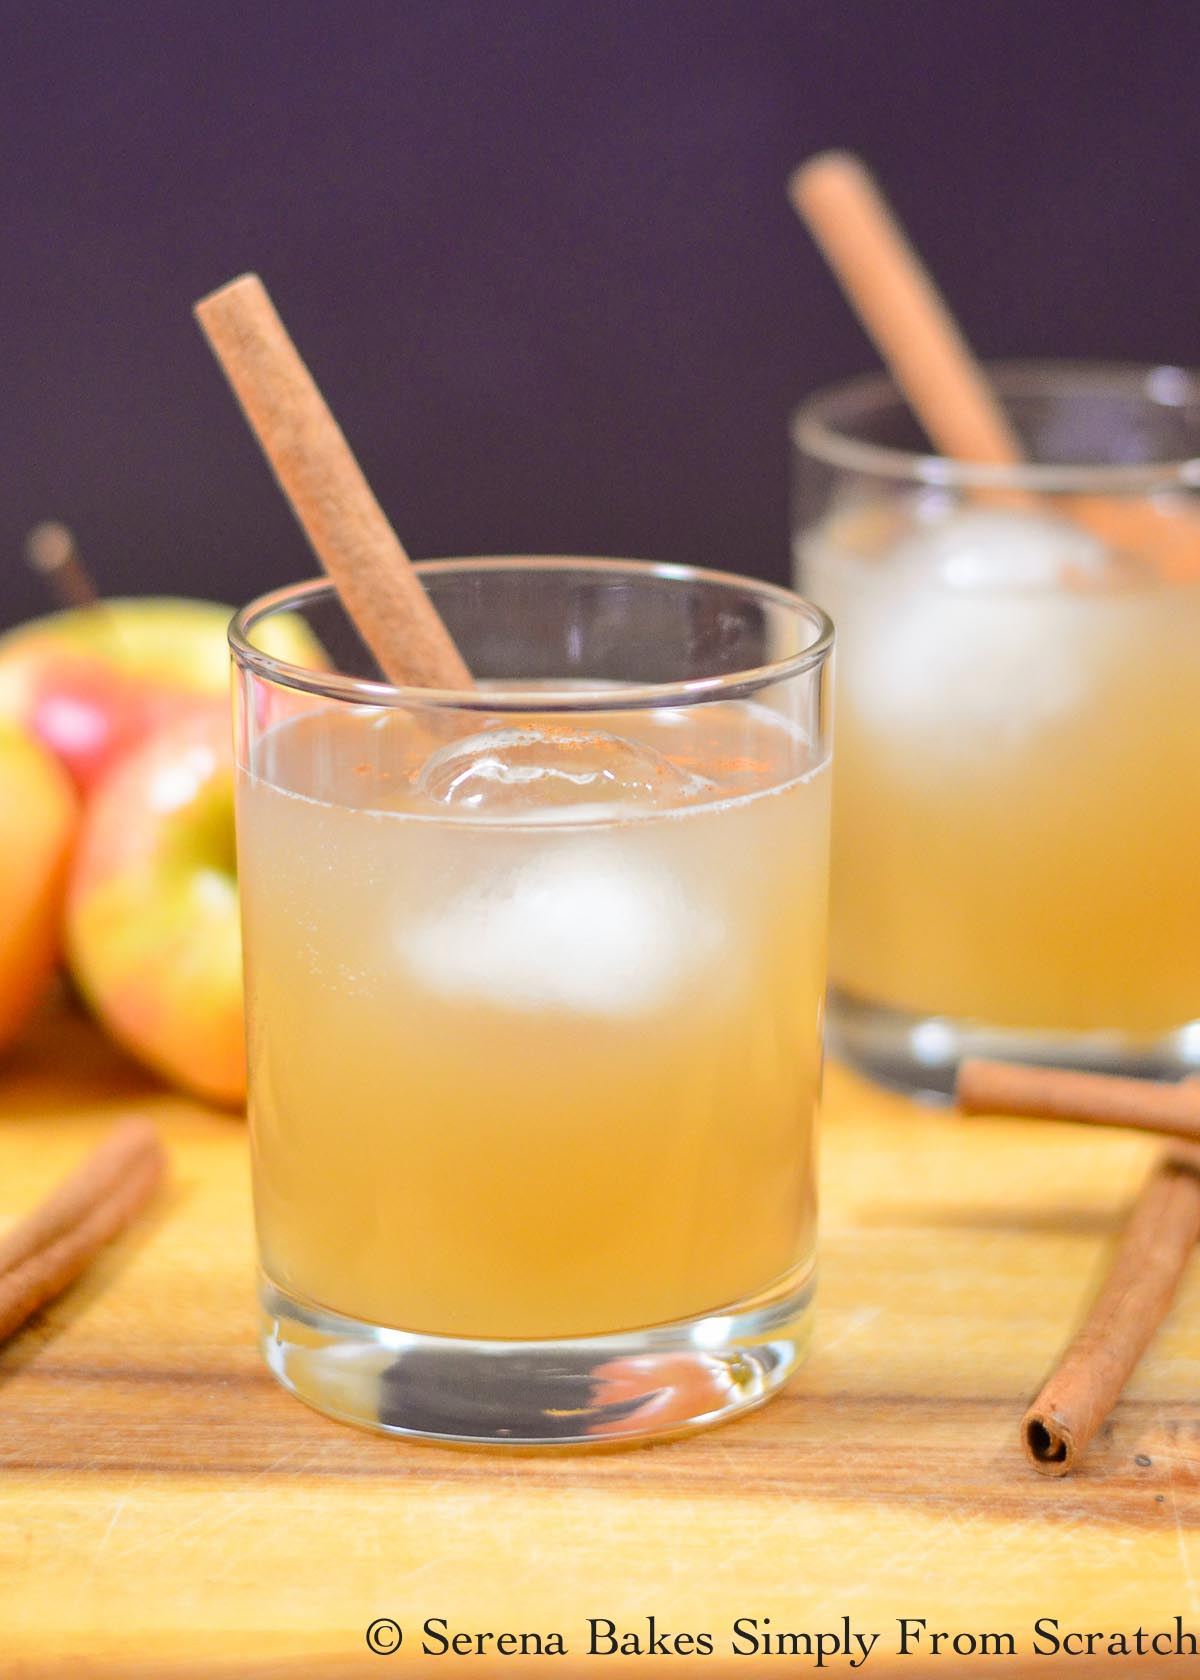 Apple Cider and Whisky with Ginger Beer garnished with a cinnamon stick.